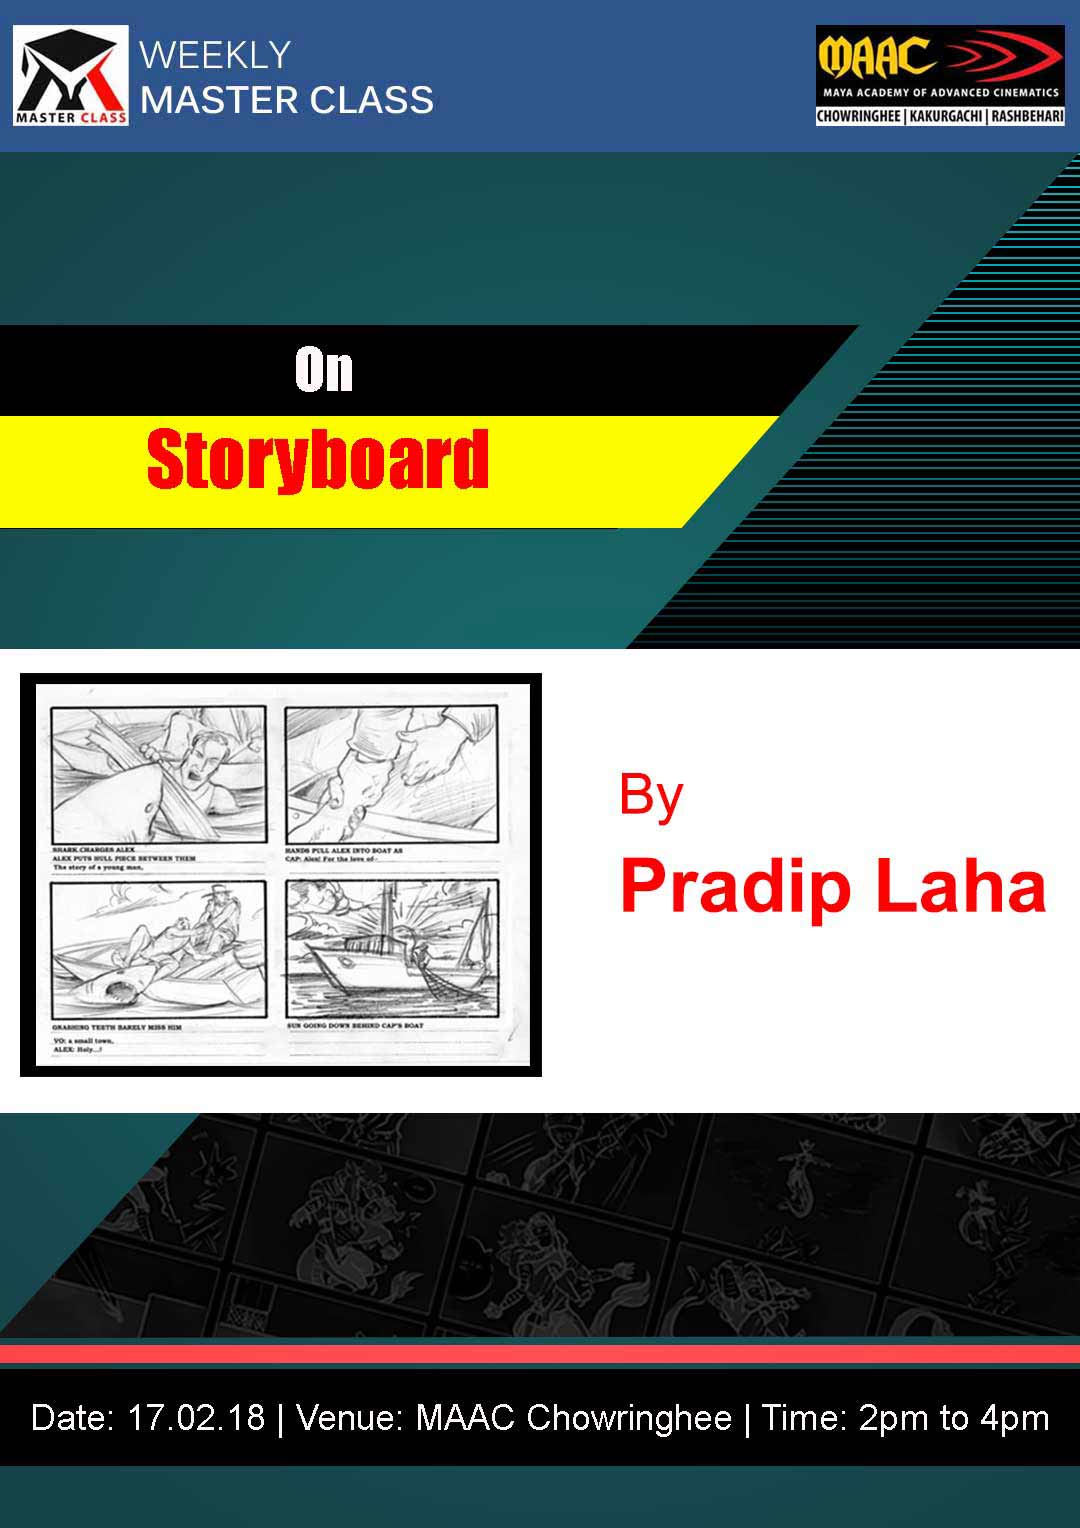 Weekly Master Class on Storyboarding